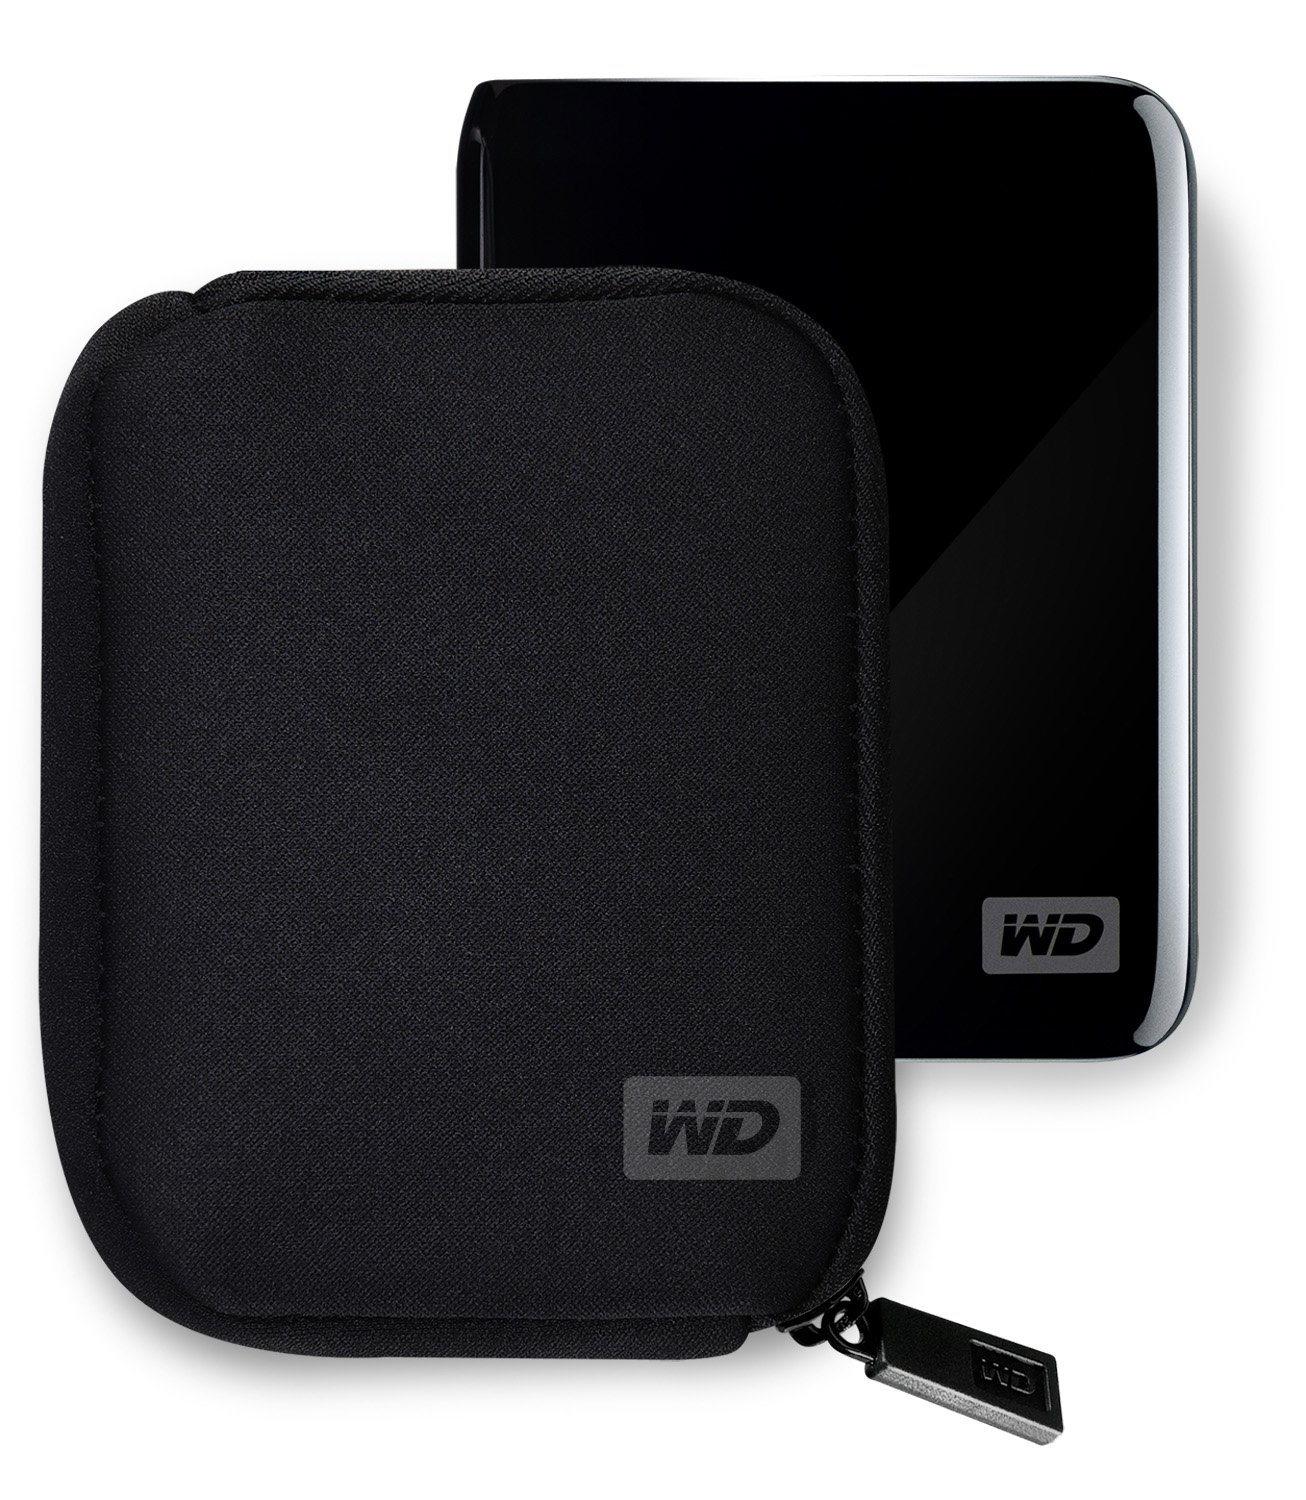 Western Digital My Passport Neoprene Carrying Case For Your Portable Wd Wdbbkd0030 3tb Hard Disk Cartridge Drive Black Computers Accessories